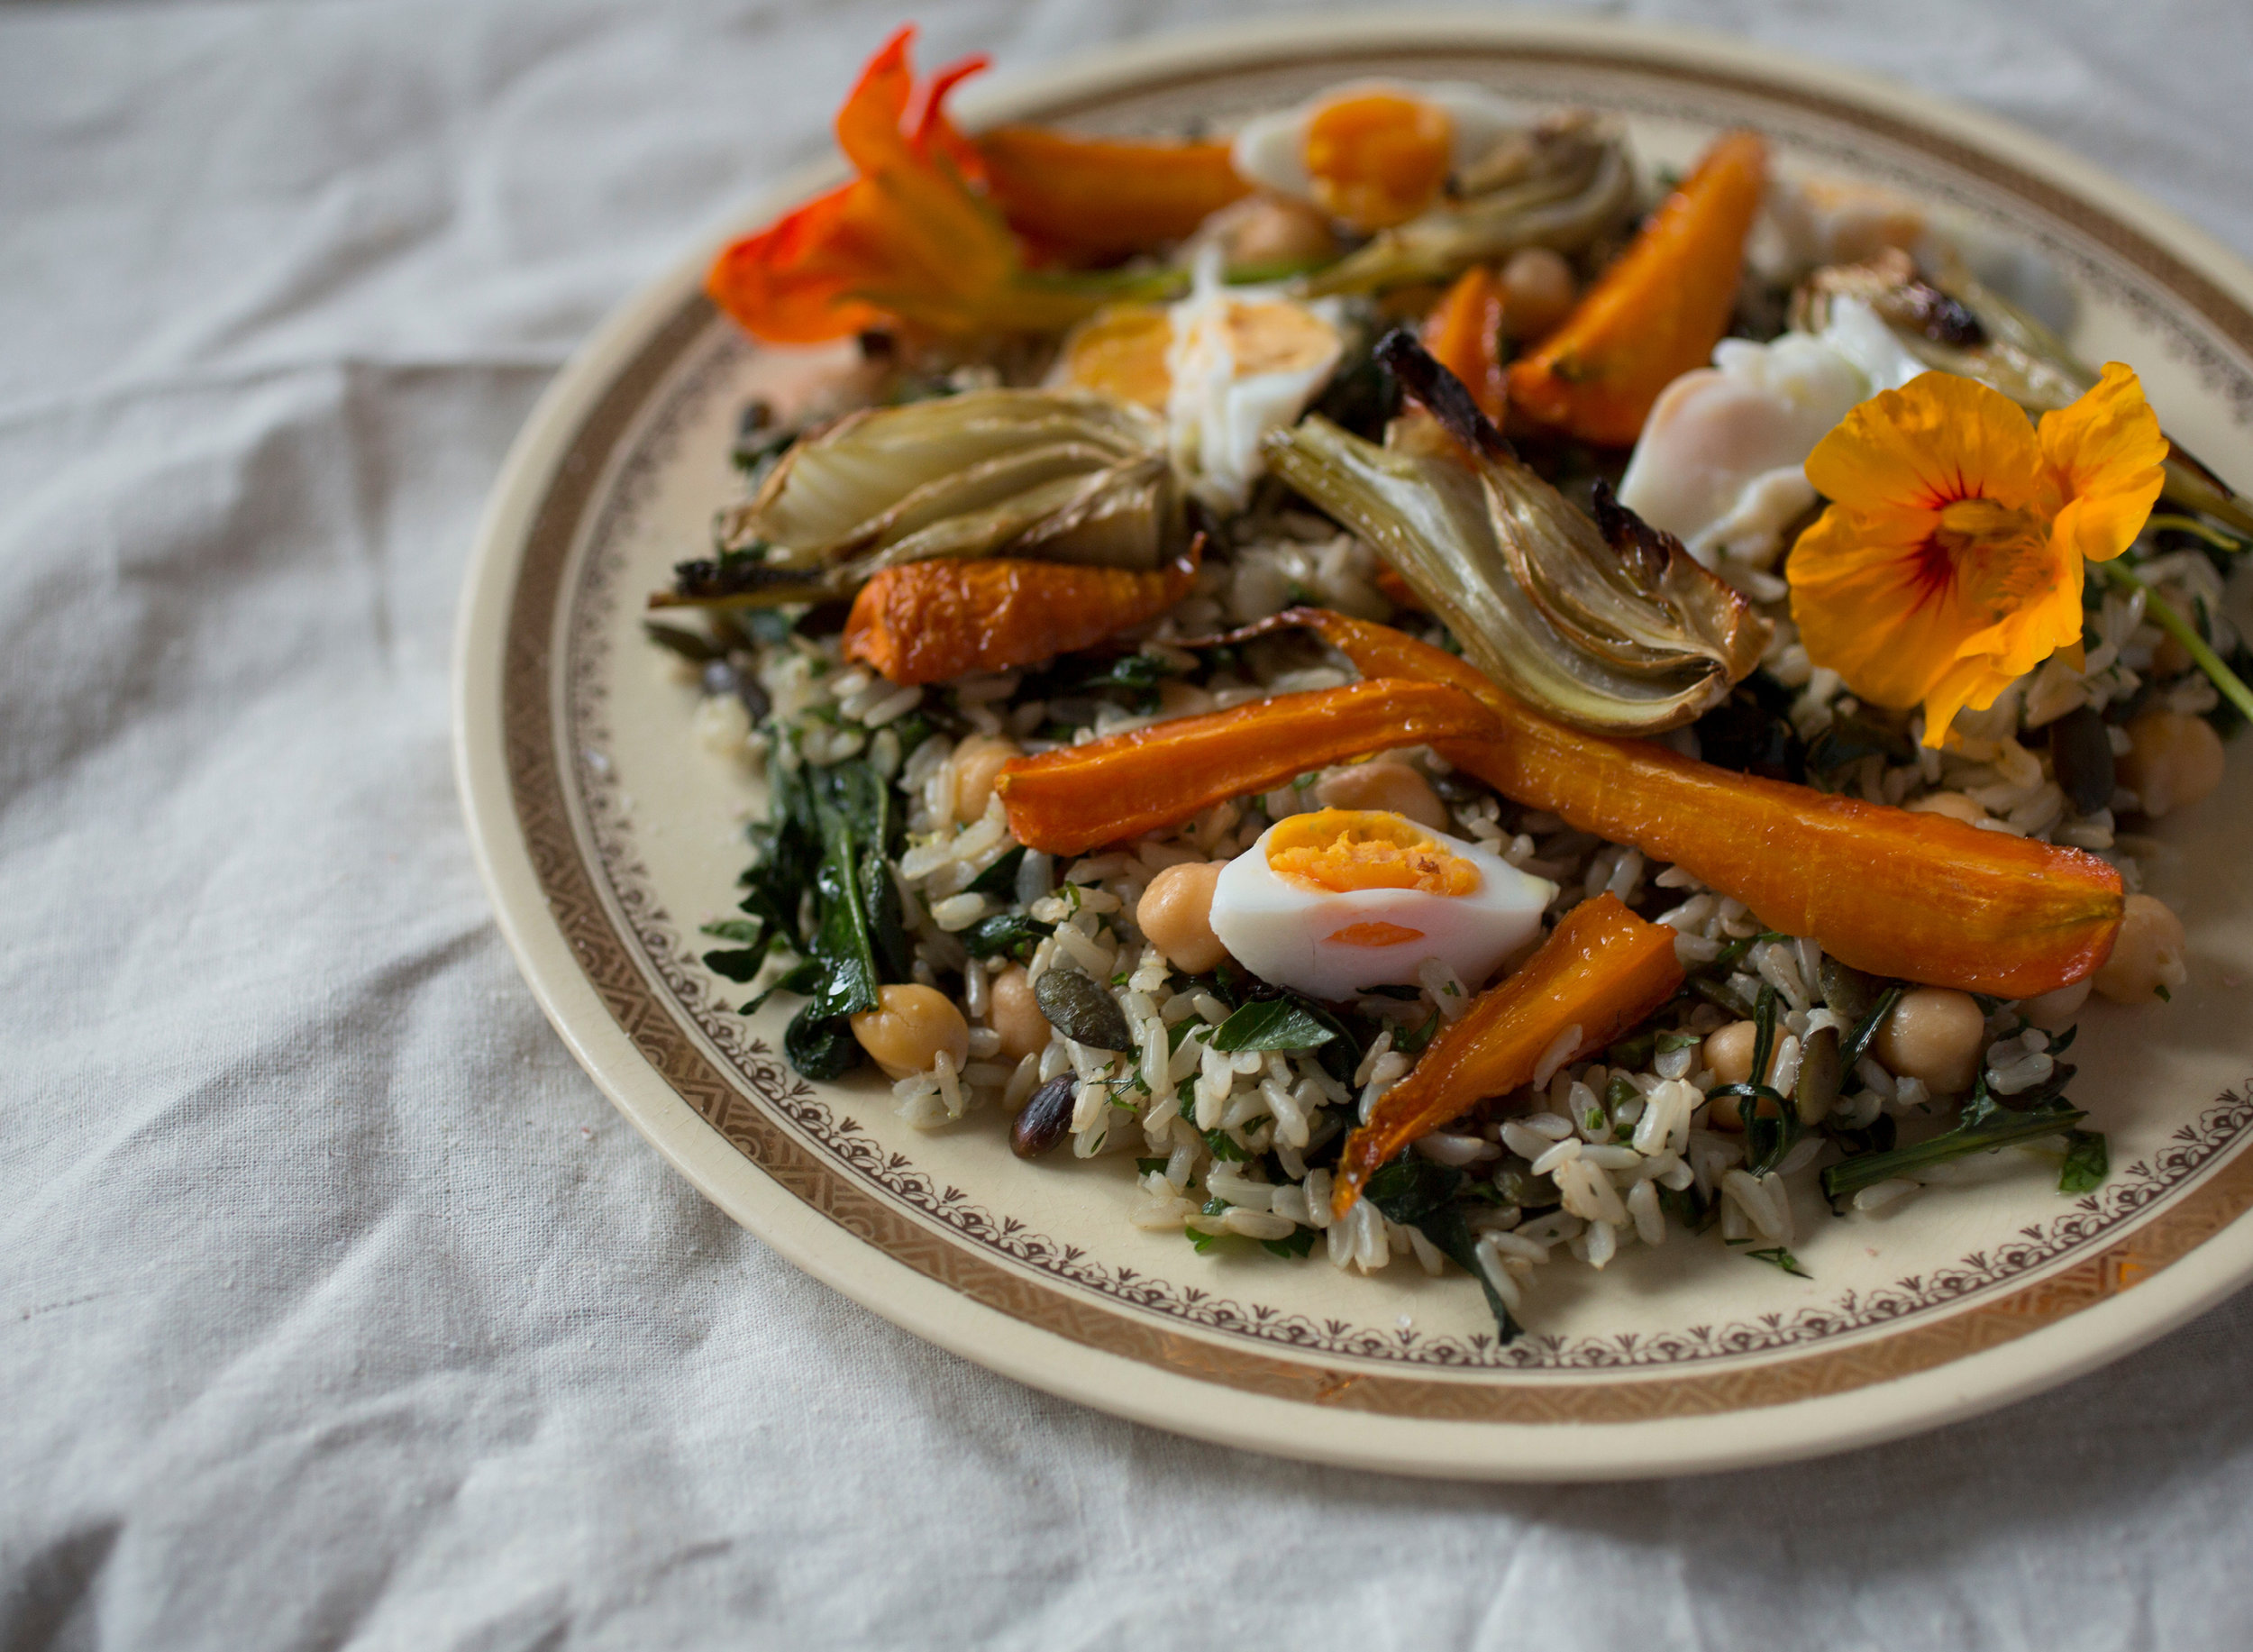 Variation 1 - roasted carrots and fennel topped with poached eggs and nasturtiums.